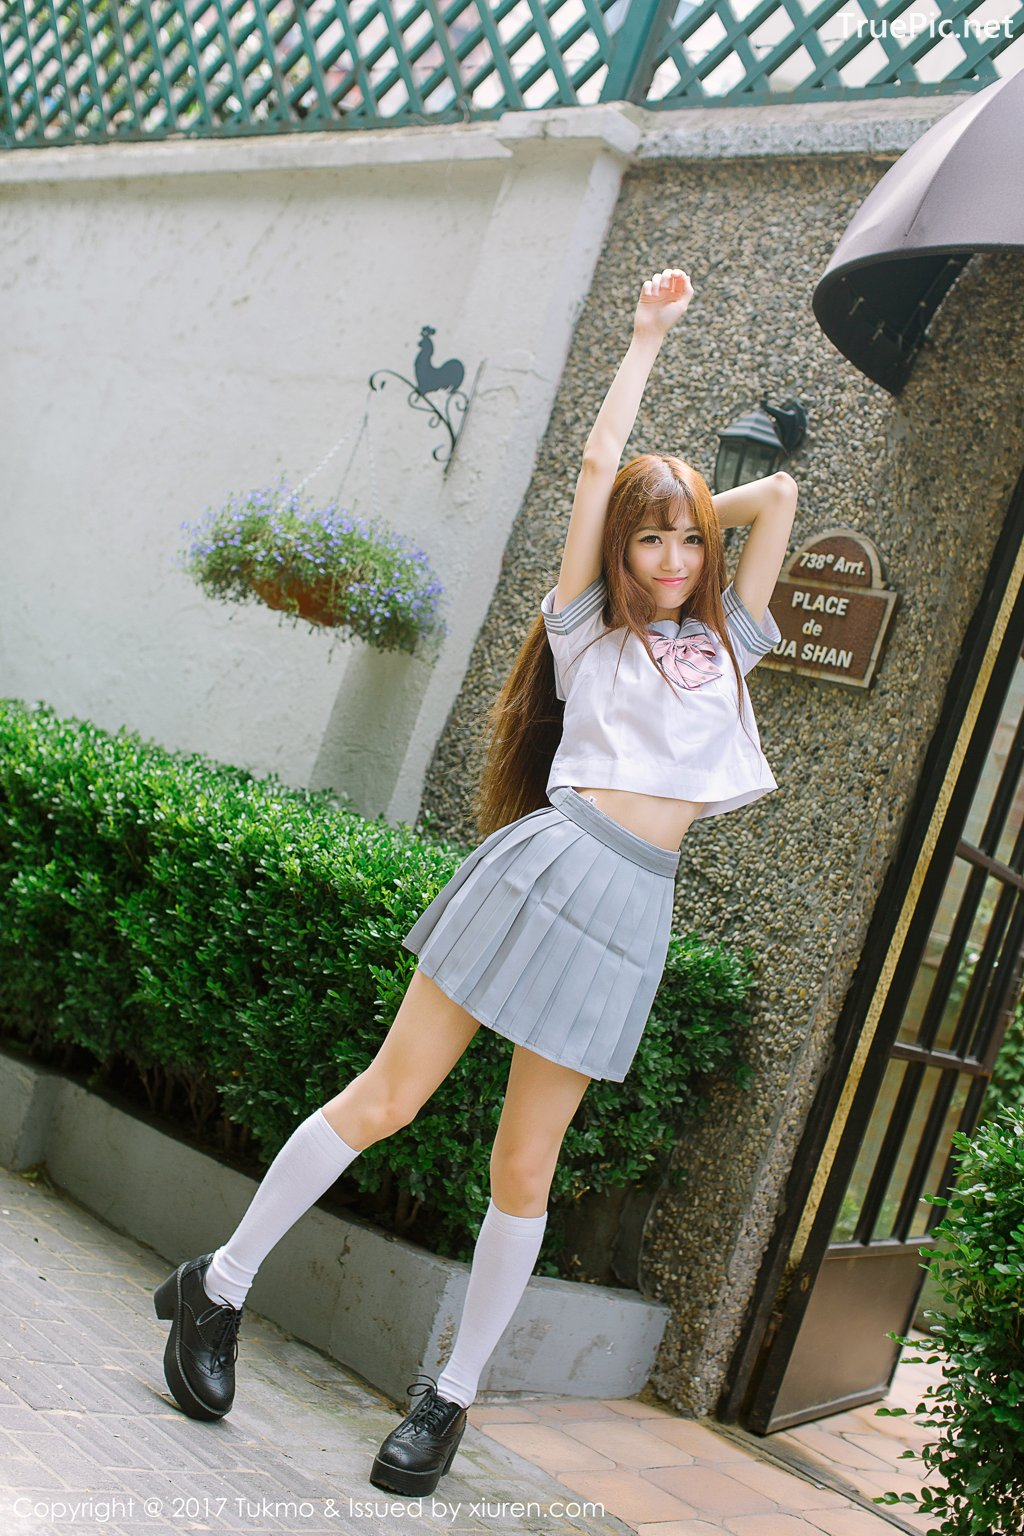 Image-Tukmo-Vol-094-Model-Zhao-Nai-Ying-赵乃莹-Lovely-School-Girl-With-Student-Uniform-TruePic.net- Picture-8